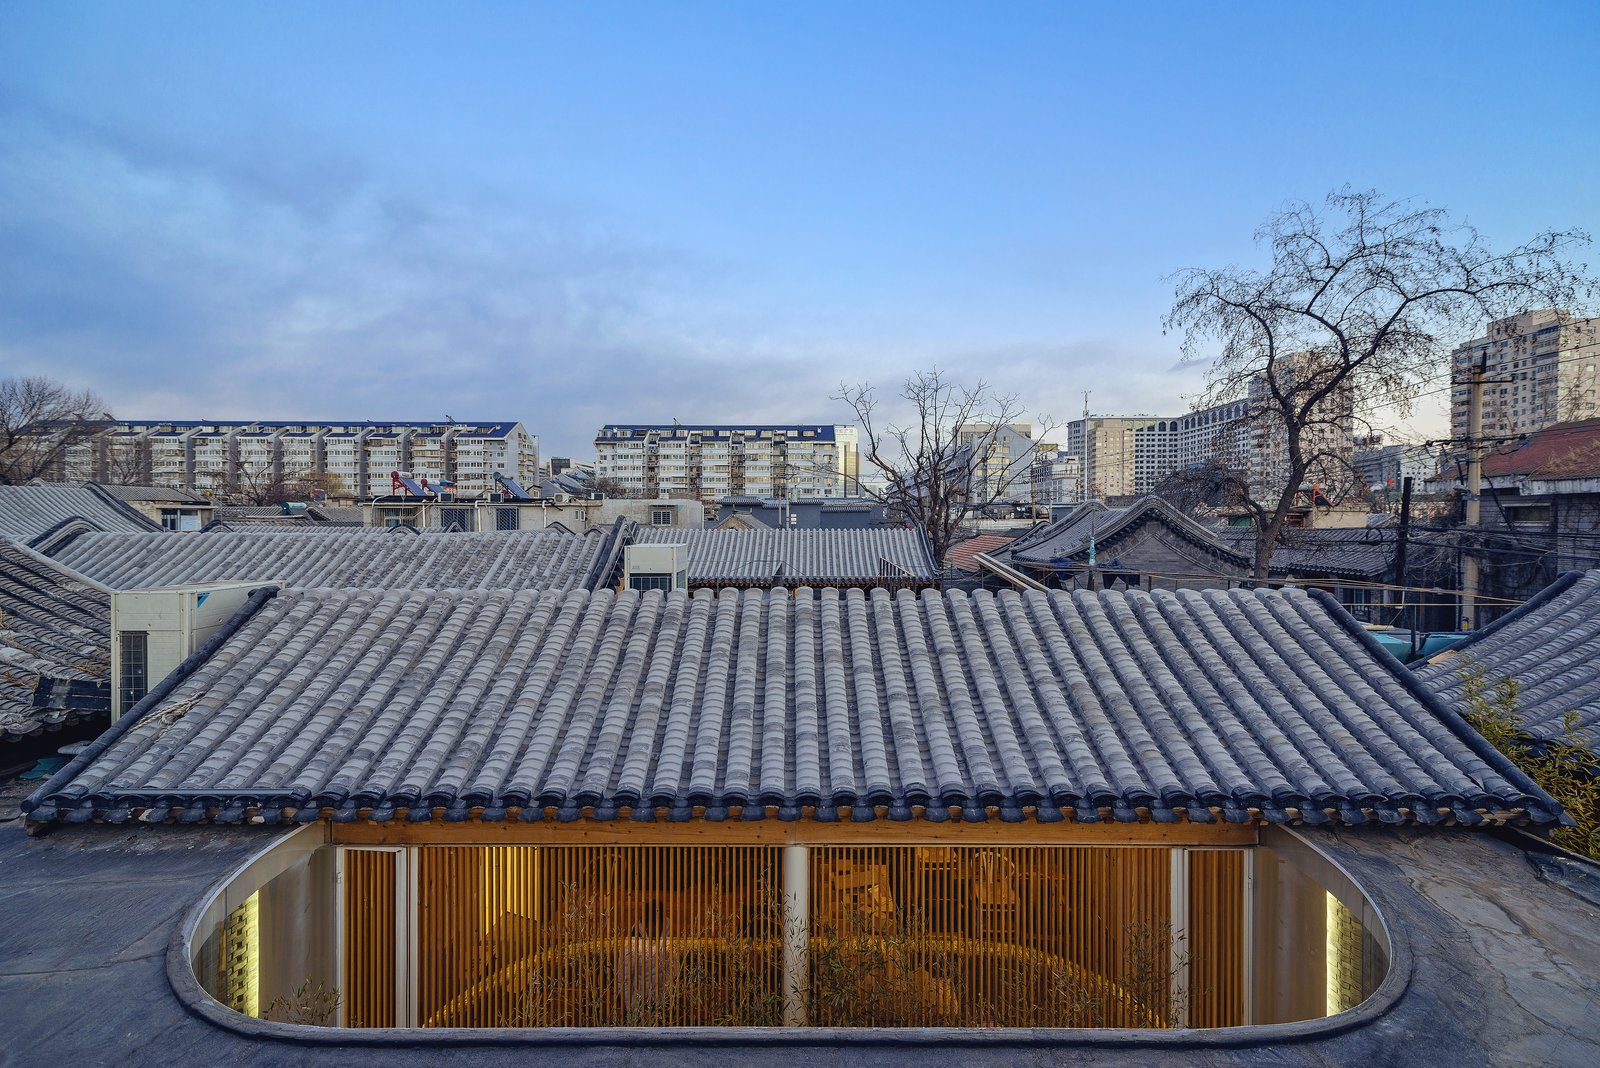 The roofs were also renovated but maintain their traditional pitched roofs. The new glass enclosure can be seen below.